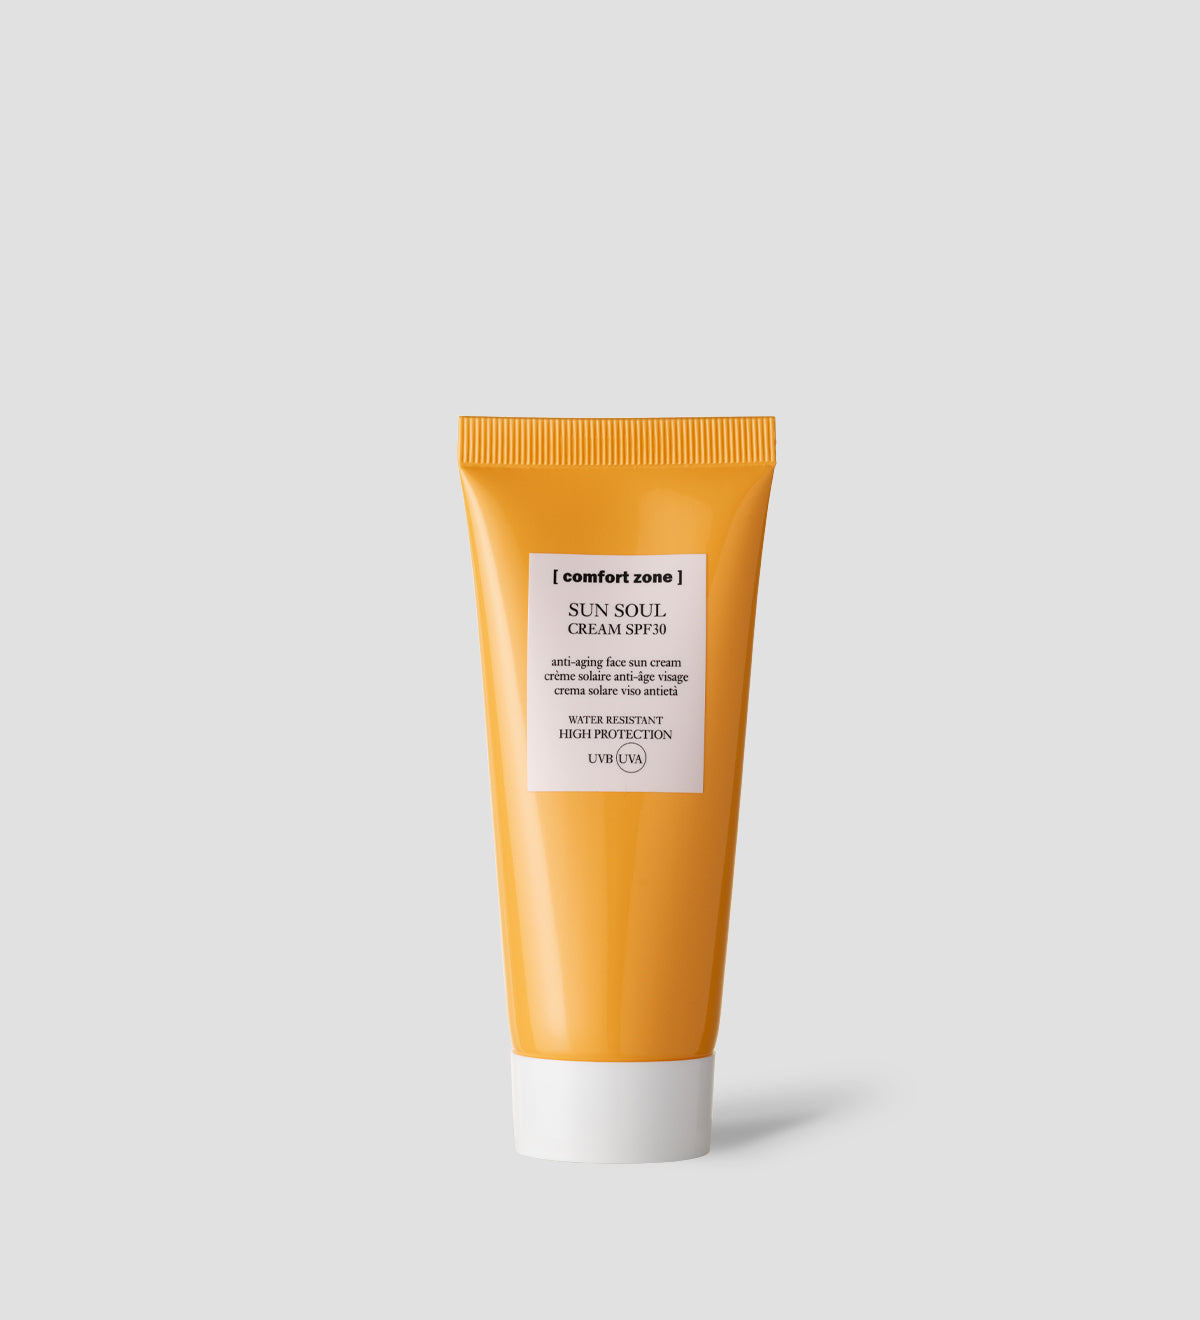 Comfort Zone: SUN SOUL CREAM SPF30 Anti-aging face sun cream-1